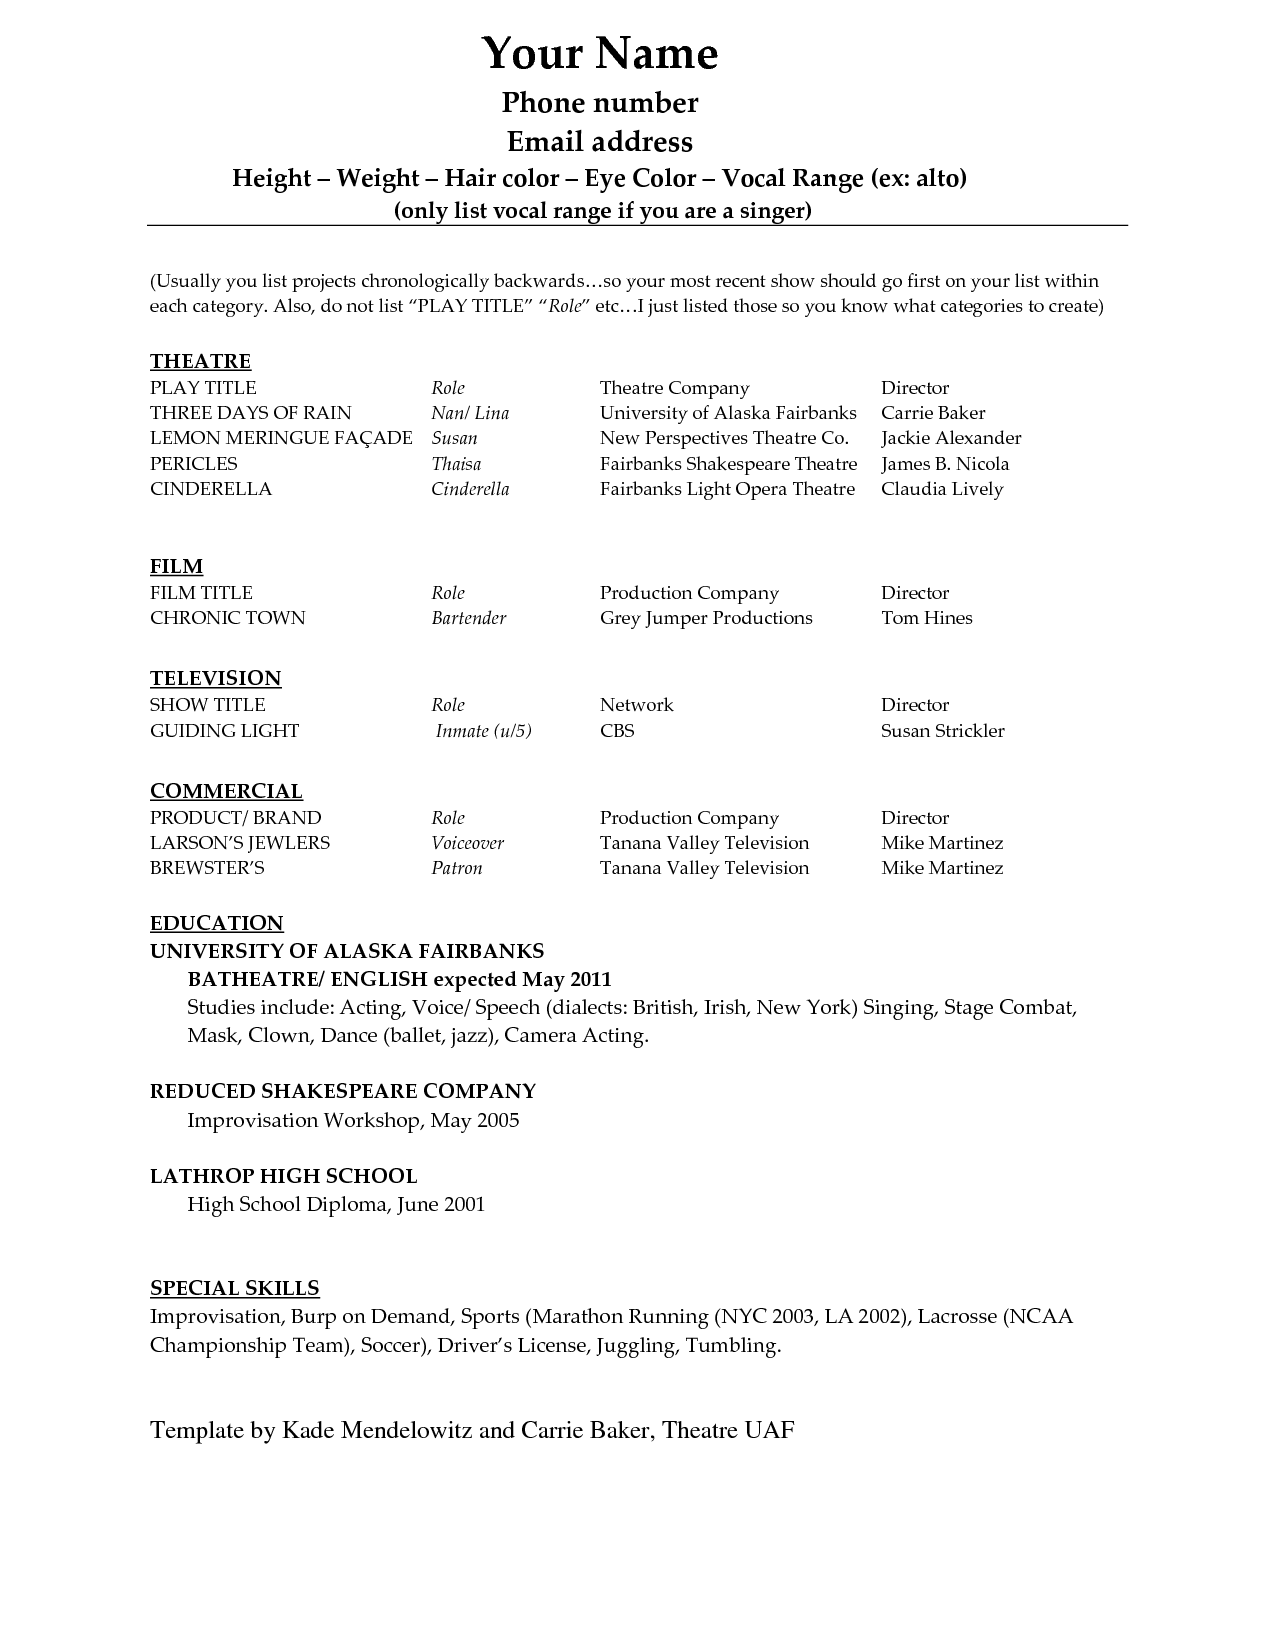 Acting Resume Template Download Free   Http://www.resumecareer.info/  Microsoft Office Word Resume Templates